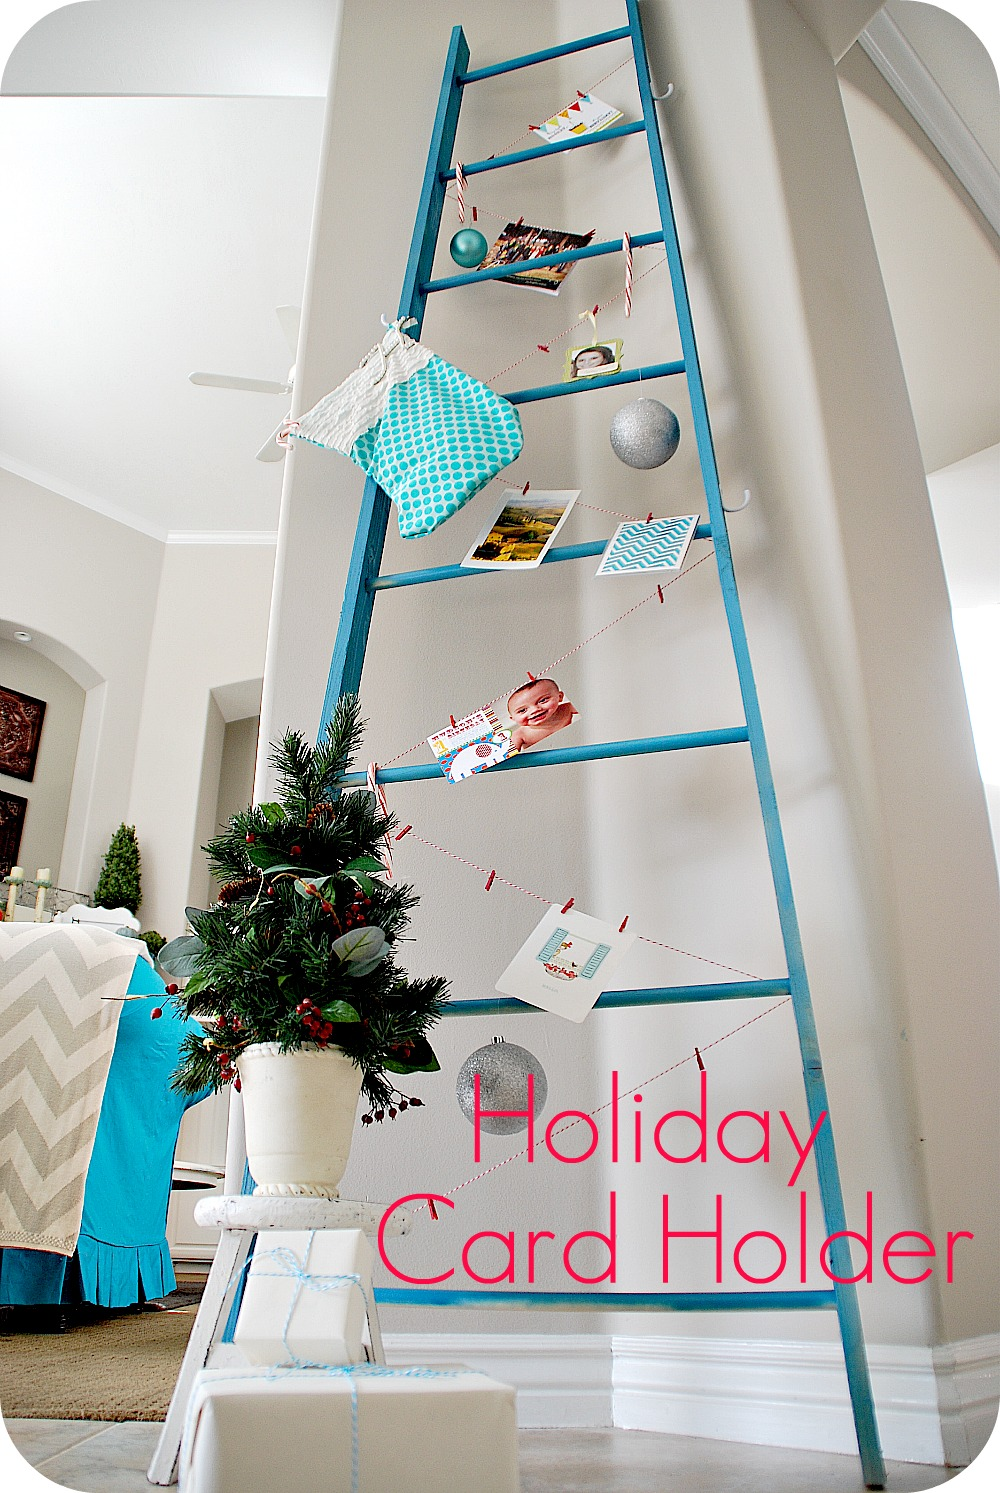 Christmas Card Holder Ideas | Holliday Decorations